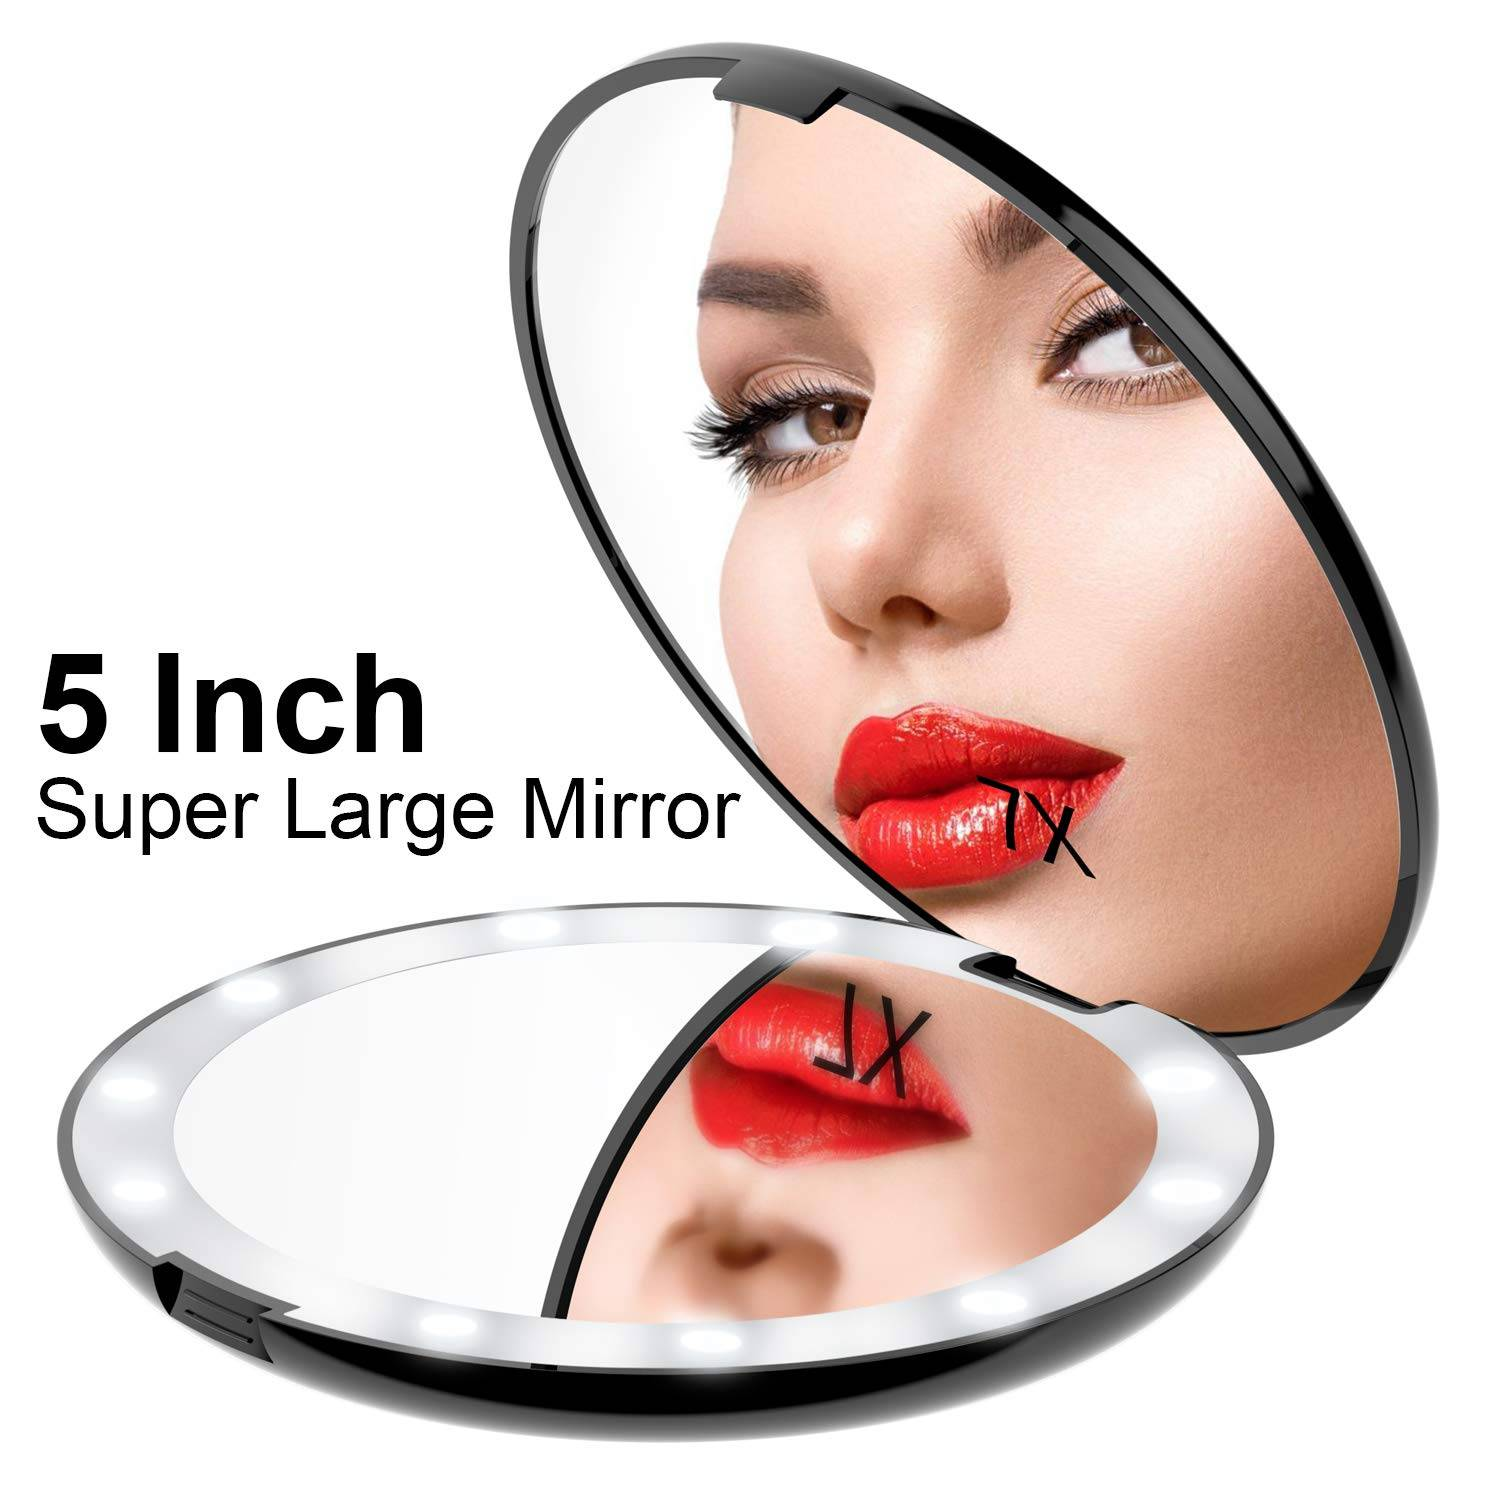 5INCH SUPER LARGE LED MAKEUP MIRROR Featured Image